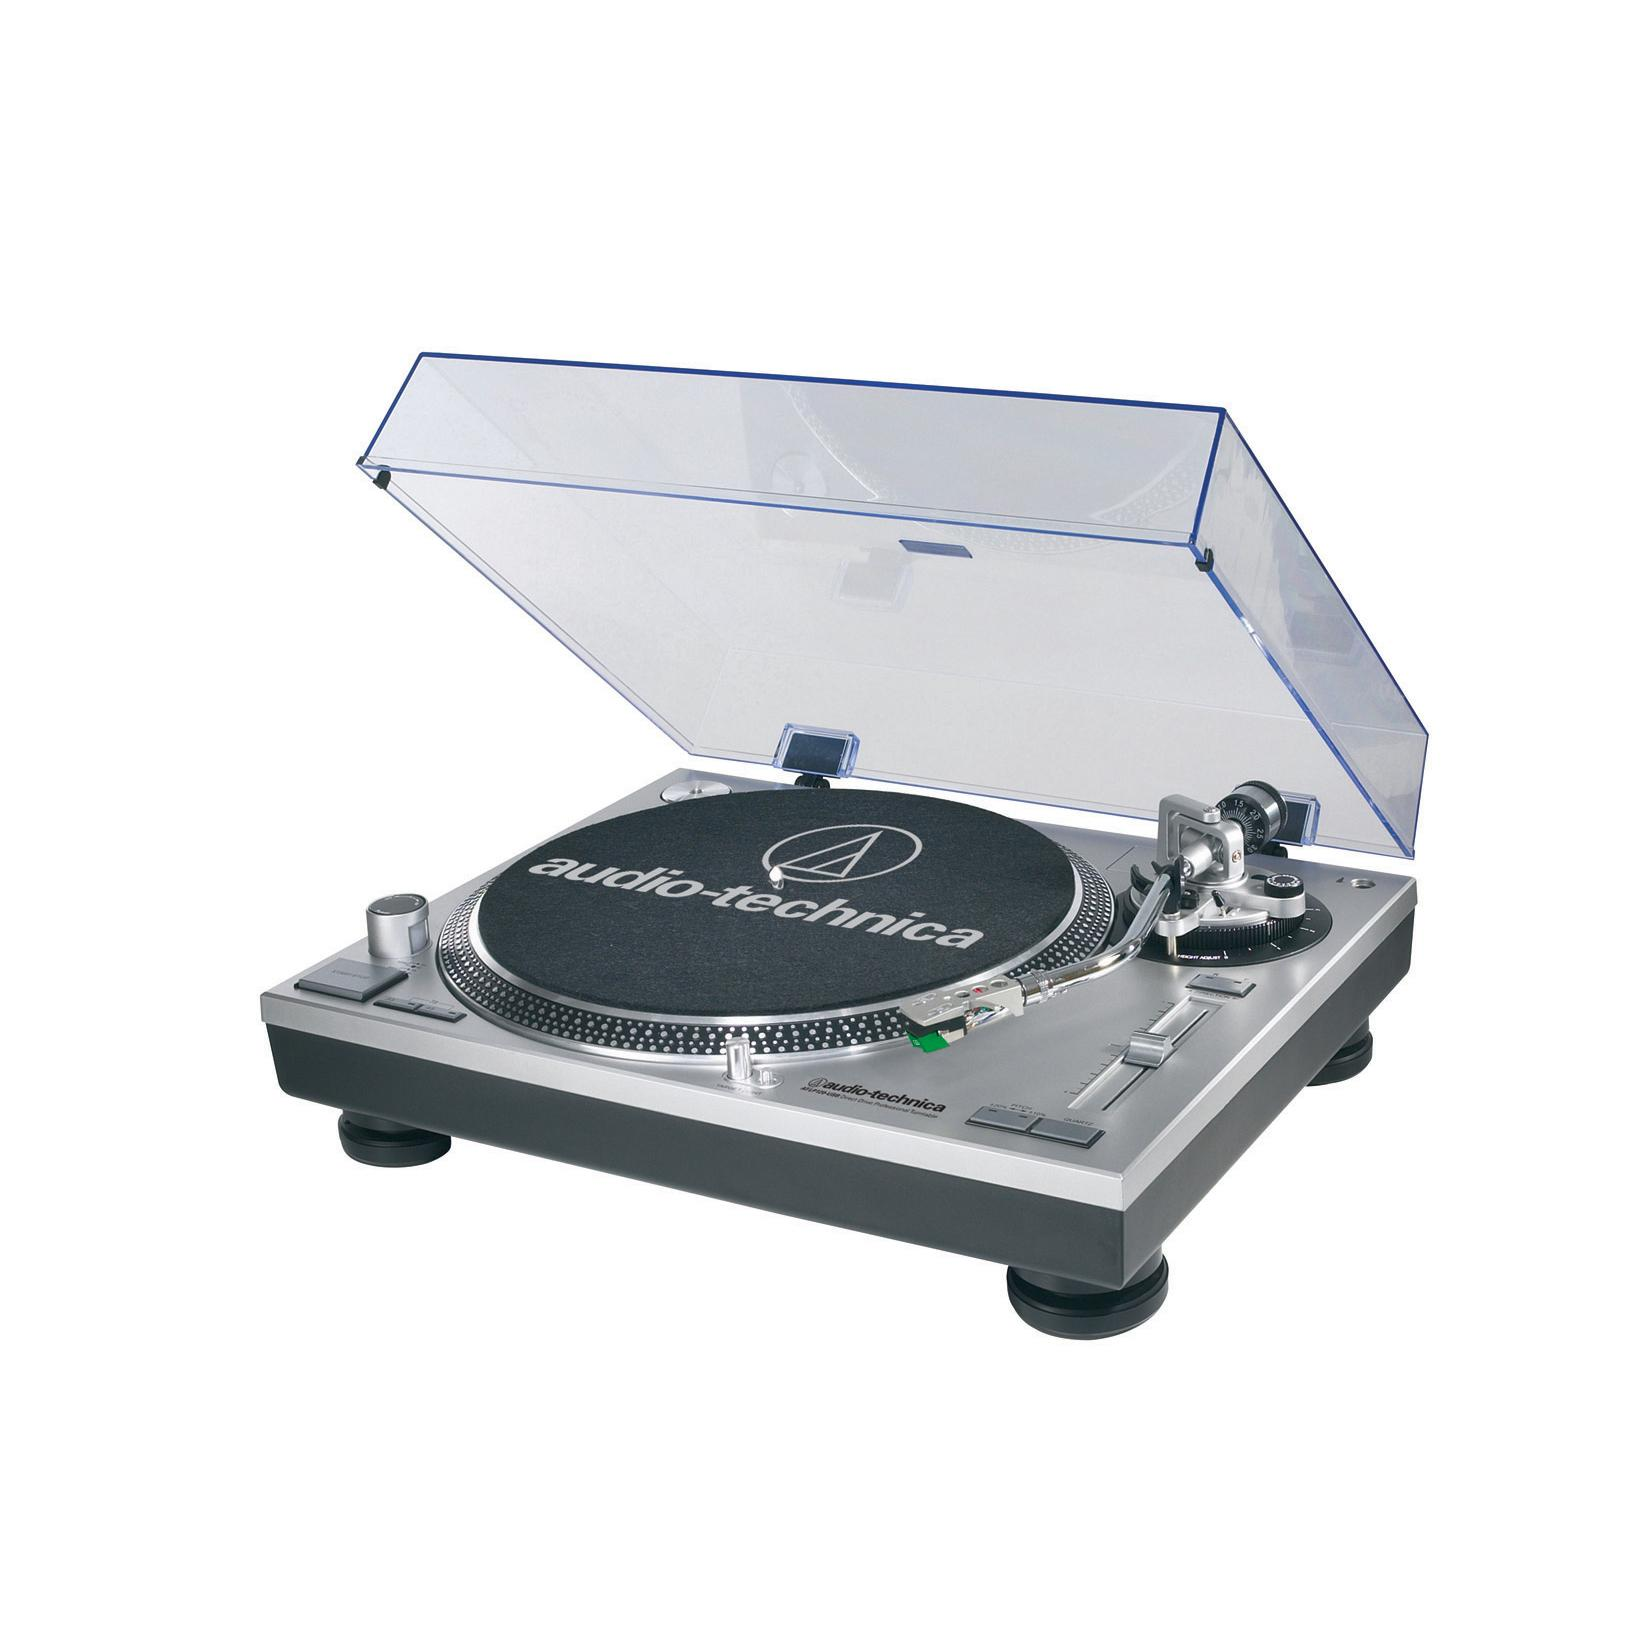 Record Player clipart old school #8